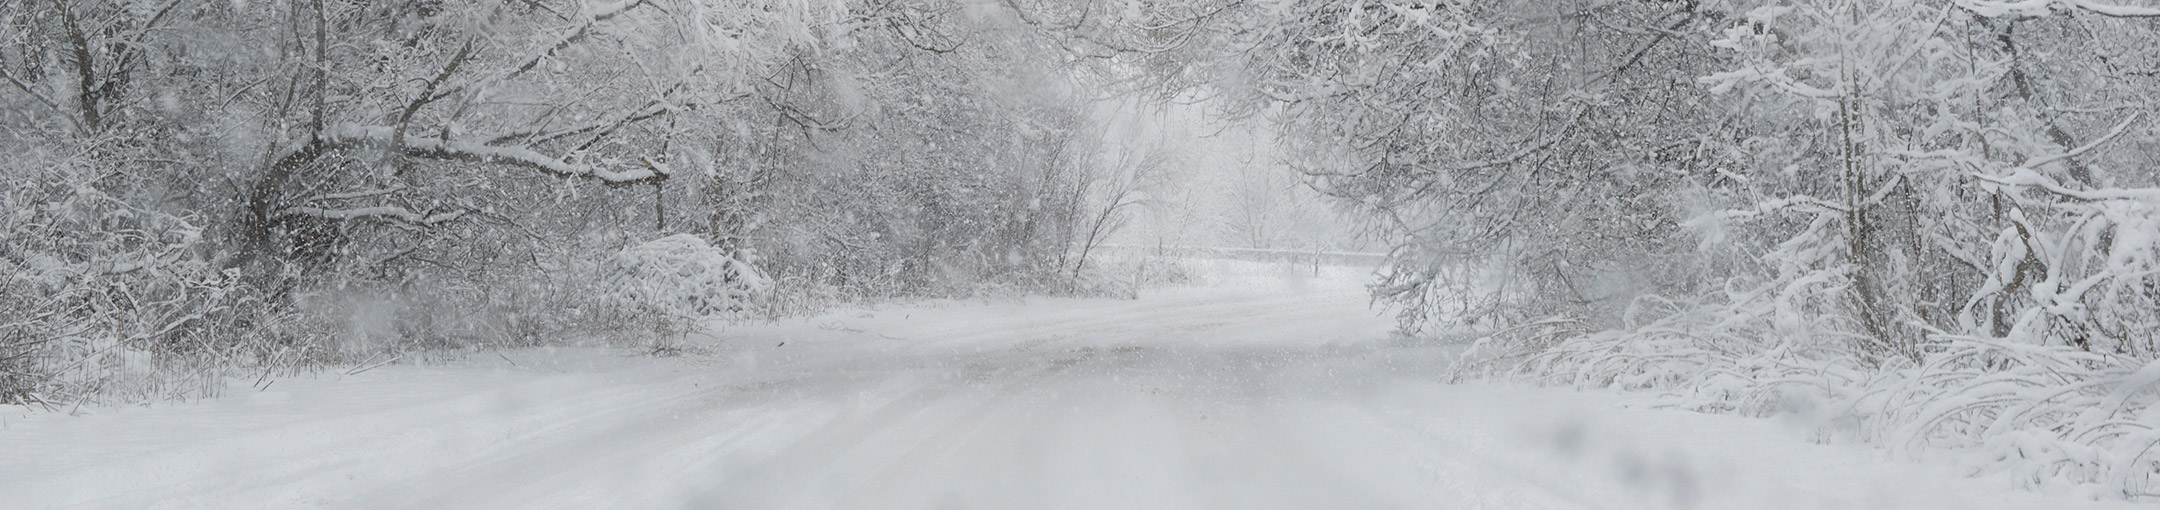 Snow-covered road flanked by snow-covered trees.